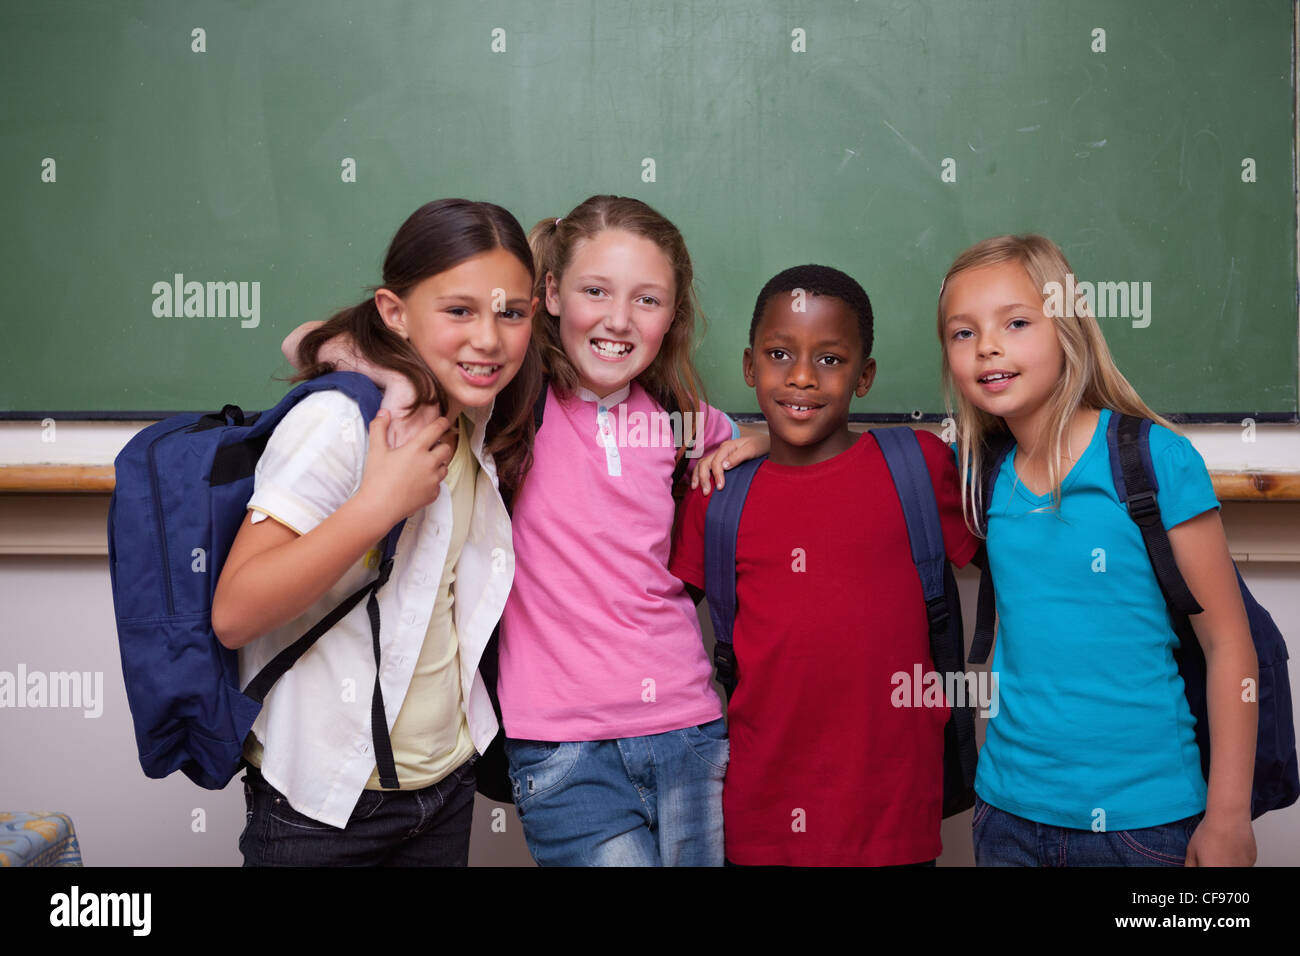 Classmates posing together - Stock Image